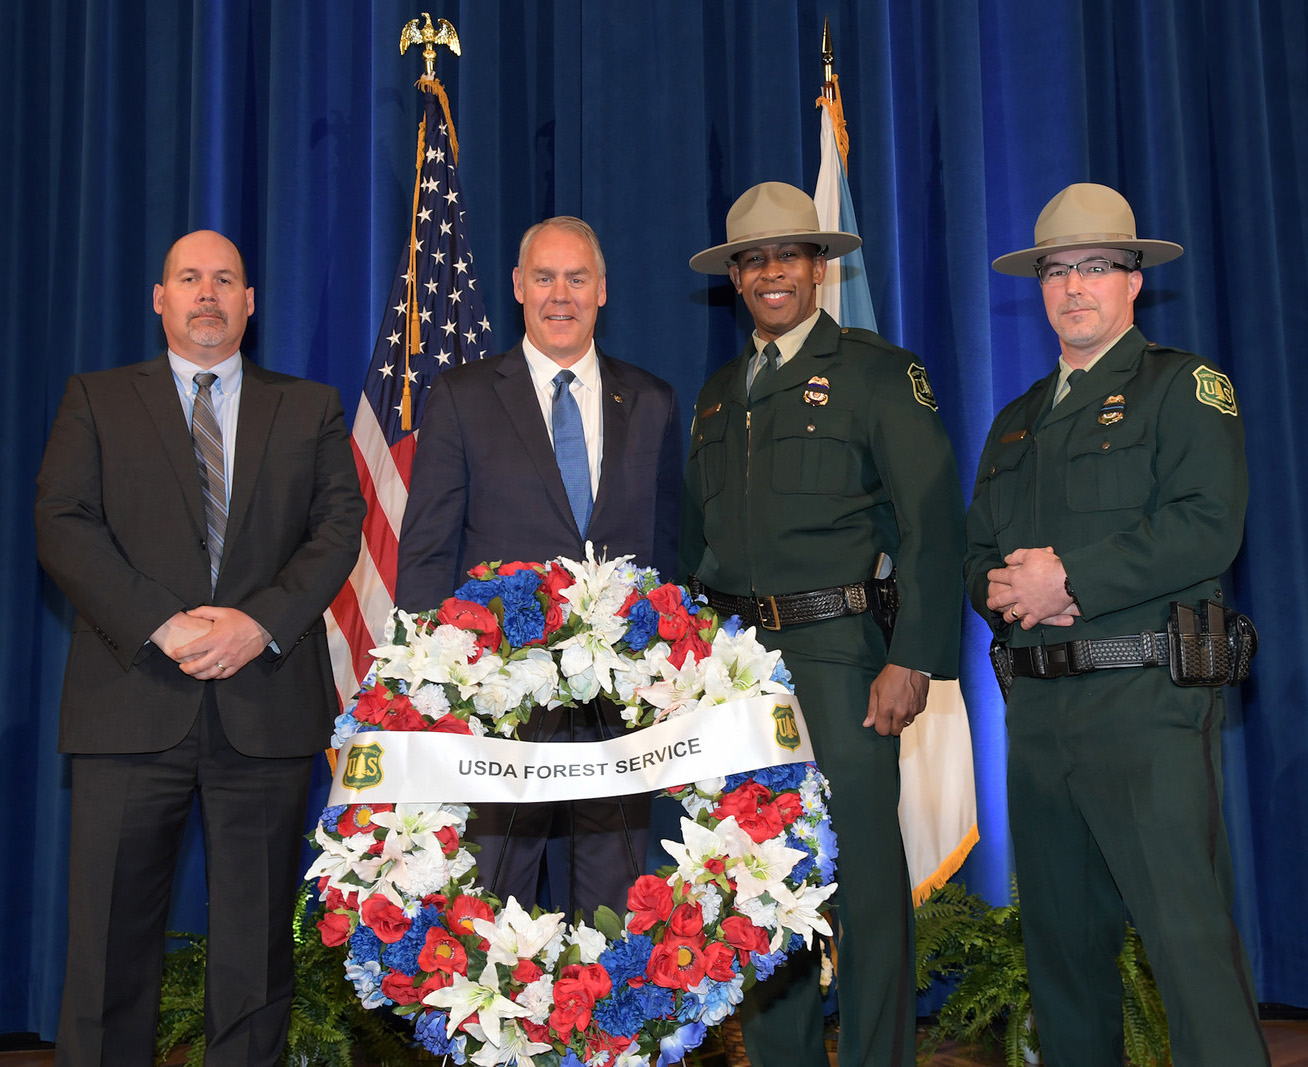 Photo: Forest Service law enforcement personnel stand with Interior Secretary Ryan Zinke and Forest Service memorial wreath.